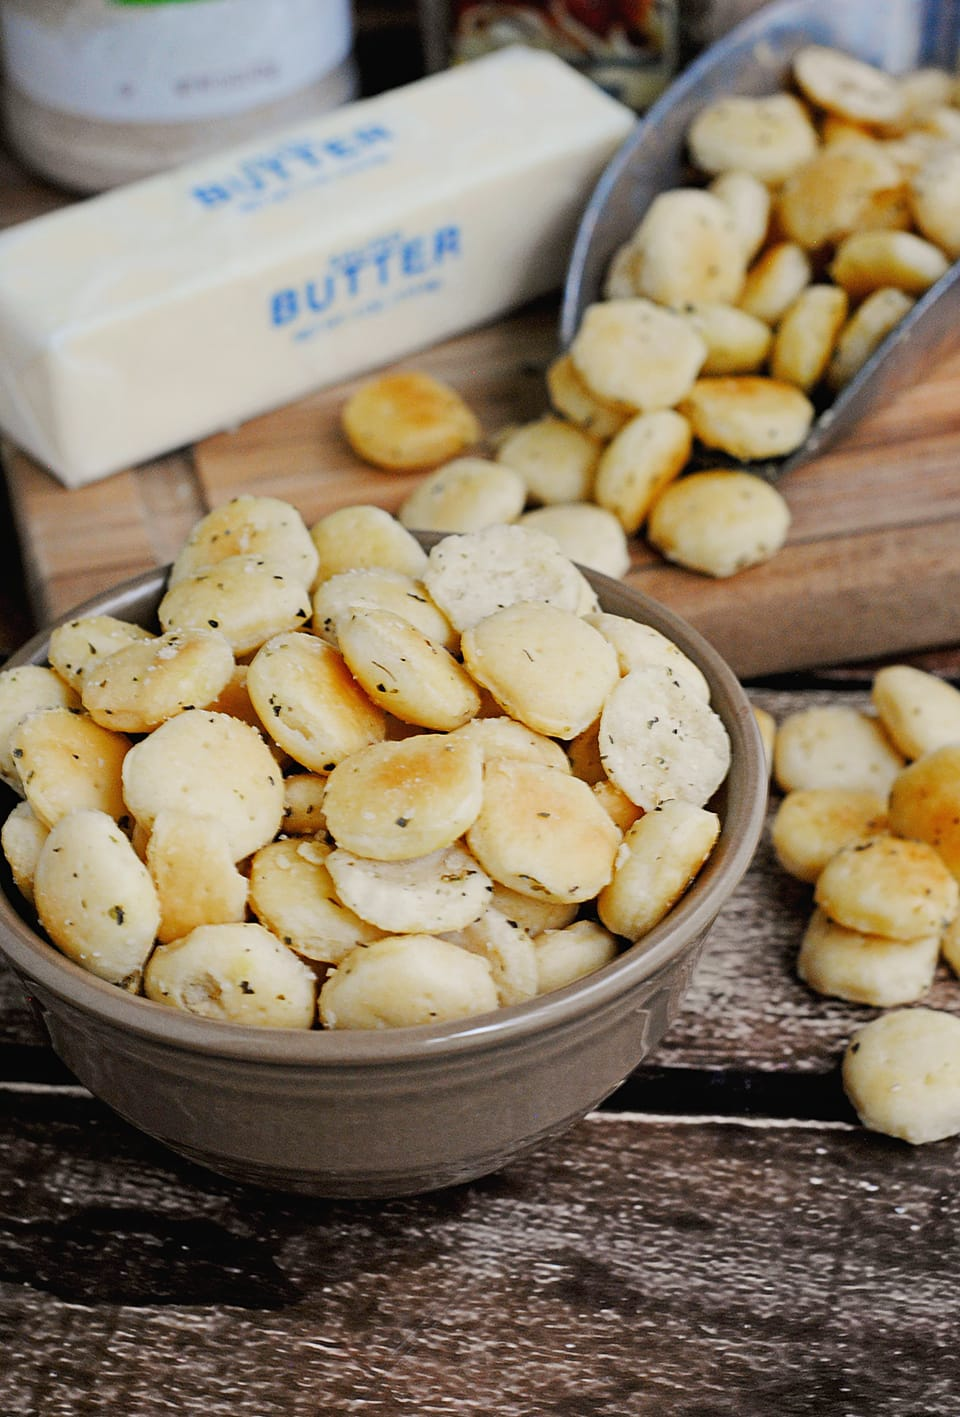 Buttered Oyster Crackers